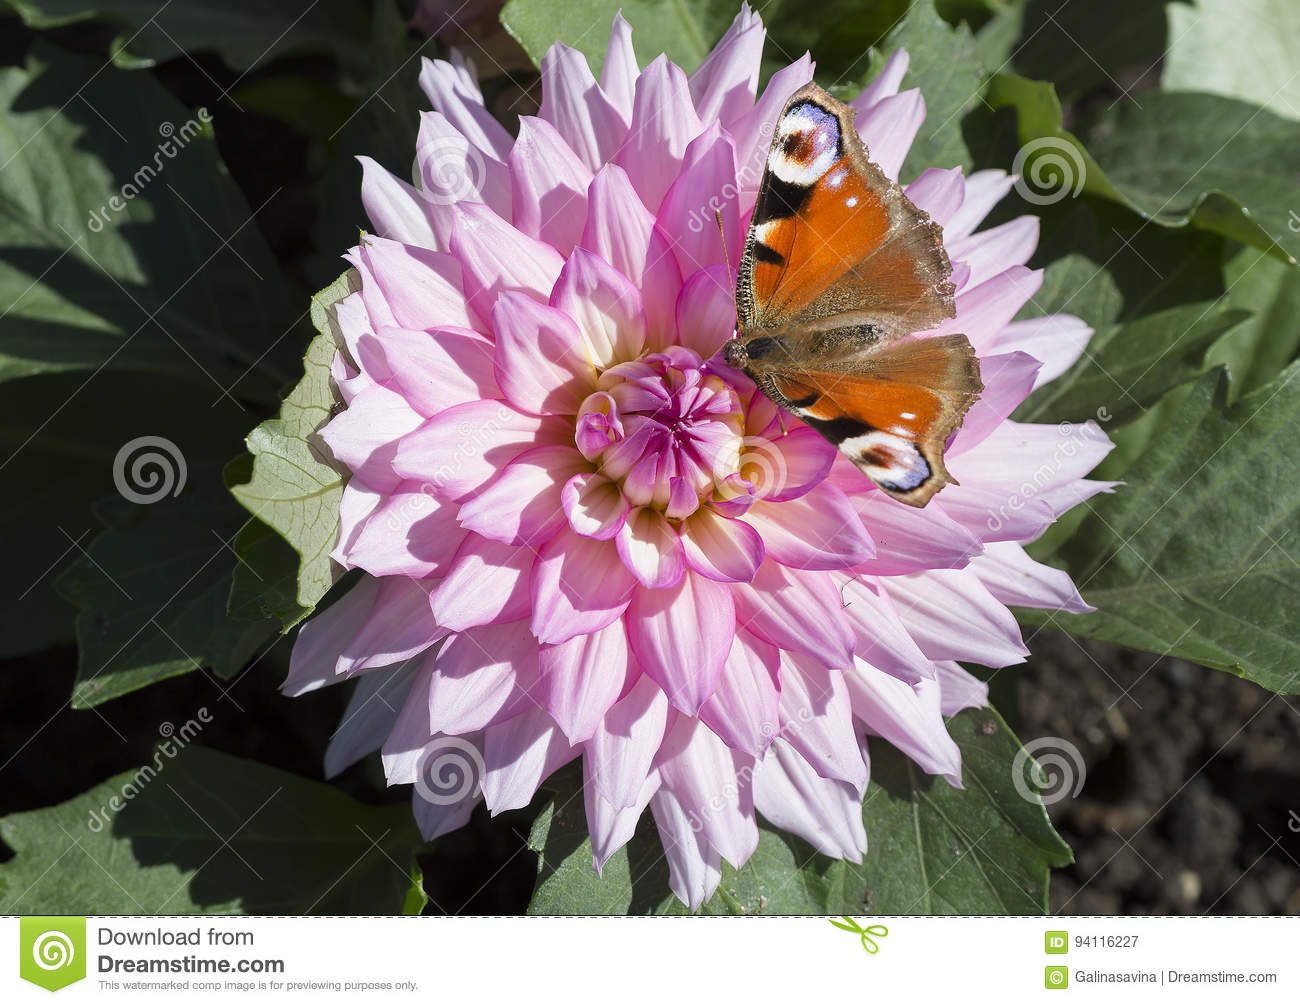 The Butterfly Of Peacock Eye On A Flower Of Pink Dahlia